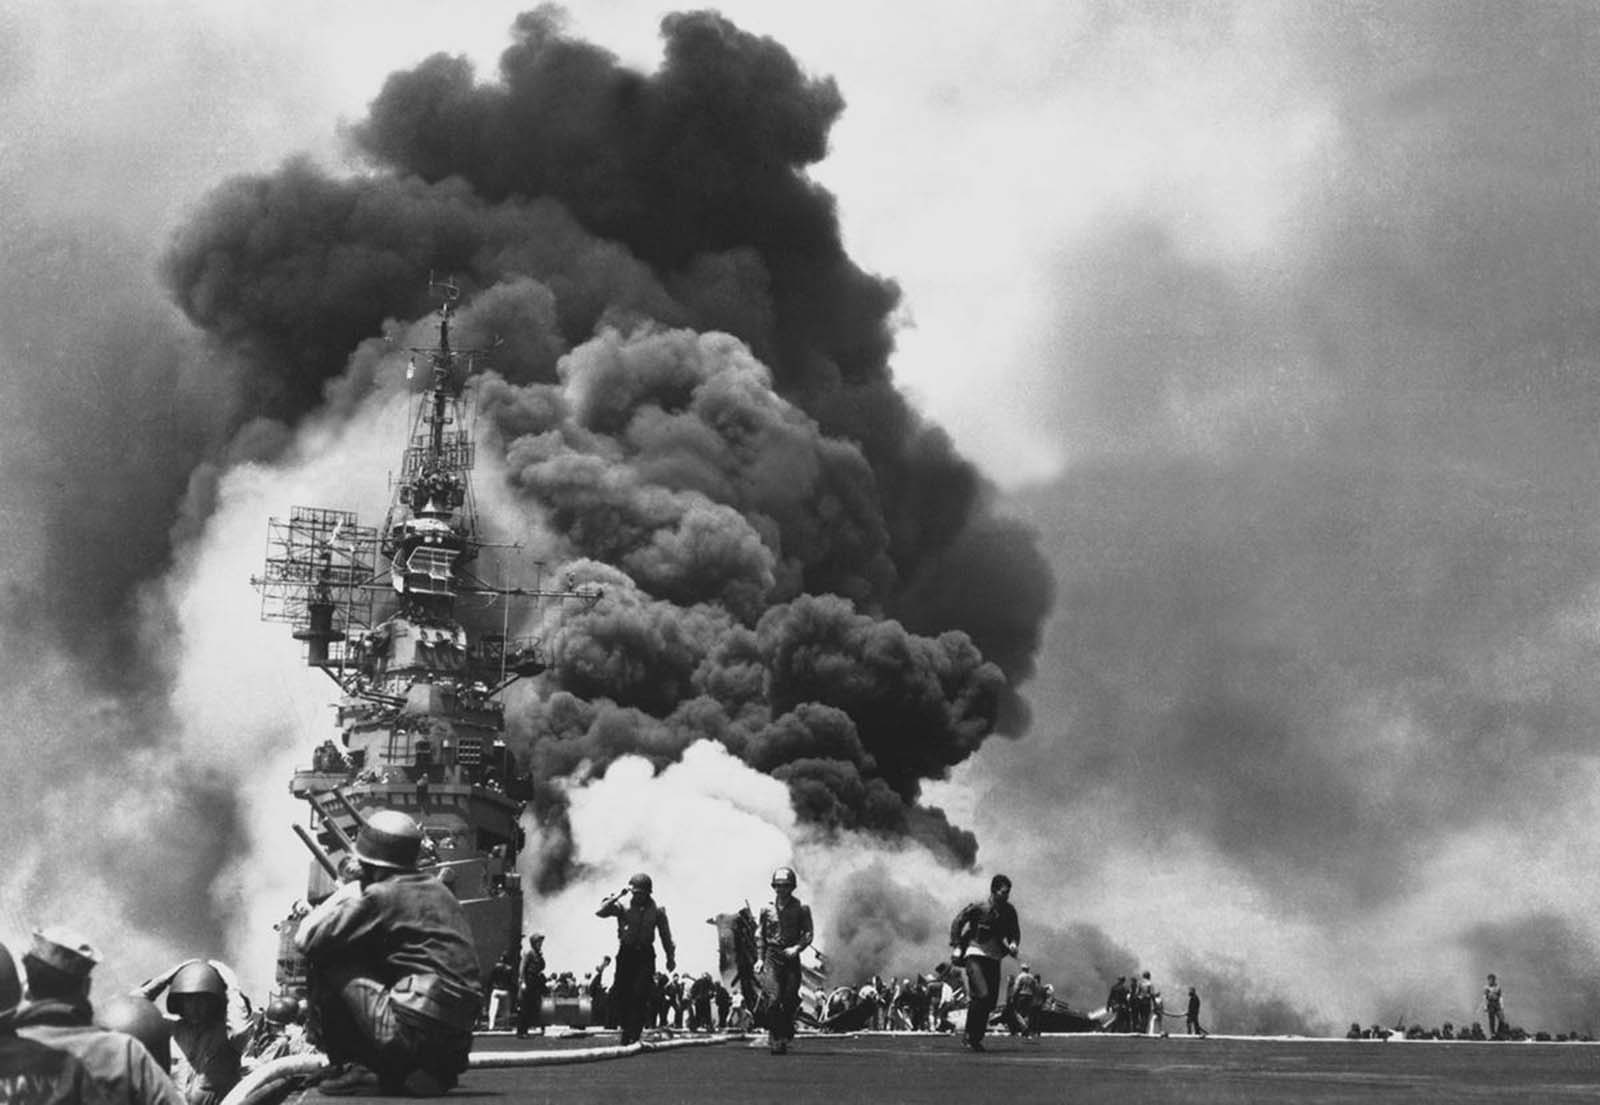 Flames leap from the deck of the USS Bunker Hill, after it was hit by two Kamikazes in 30 seconds on May 11, 1945 off Kyushu. 346 aboard were killed, another 264 wounded.